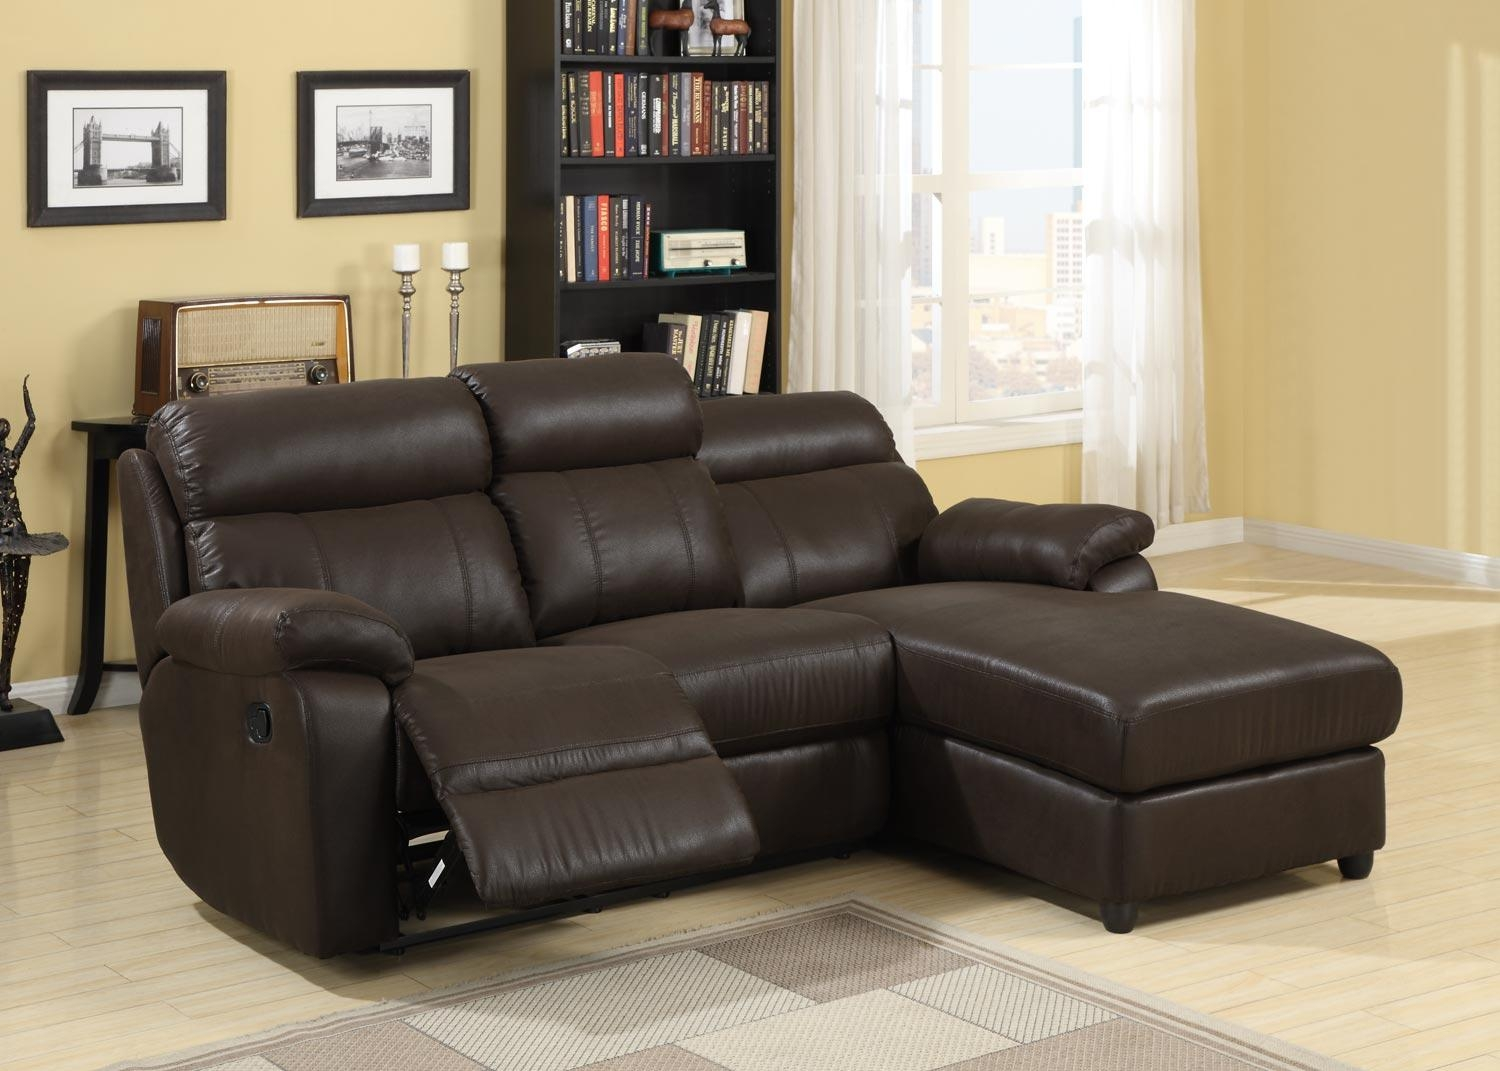 Homelegance Gaines Sectional Sofa – Brown – Bomber Jacket Inside Bomber Leather Sofas (Image 8 of 20)